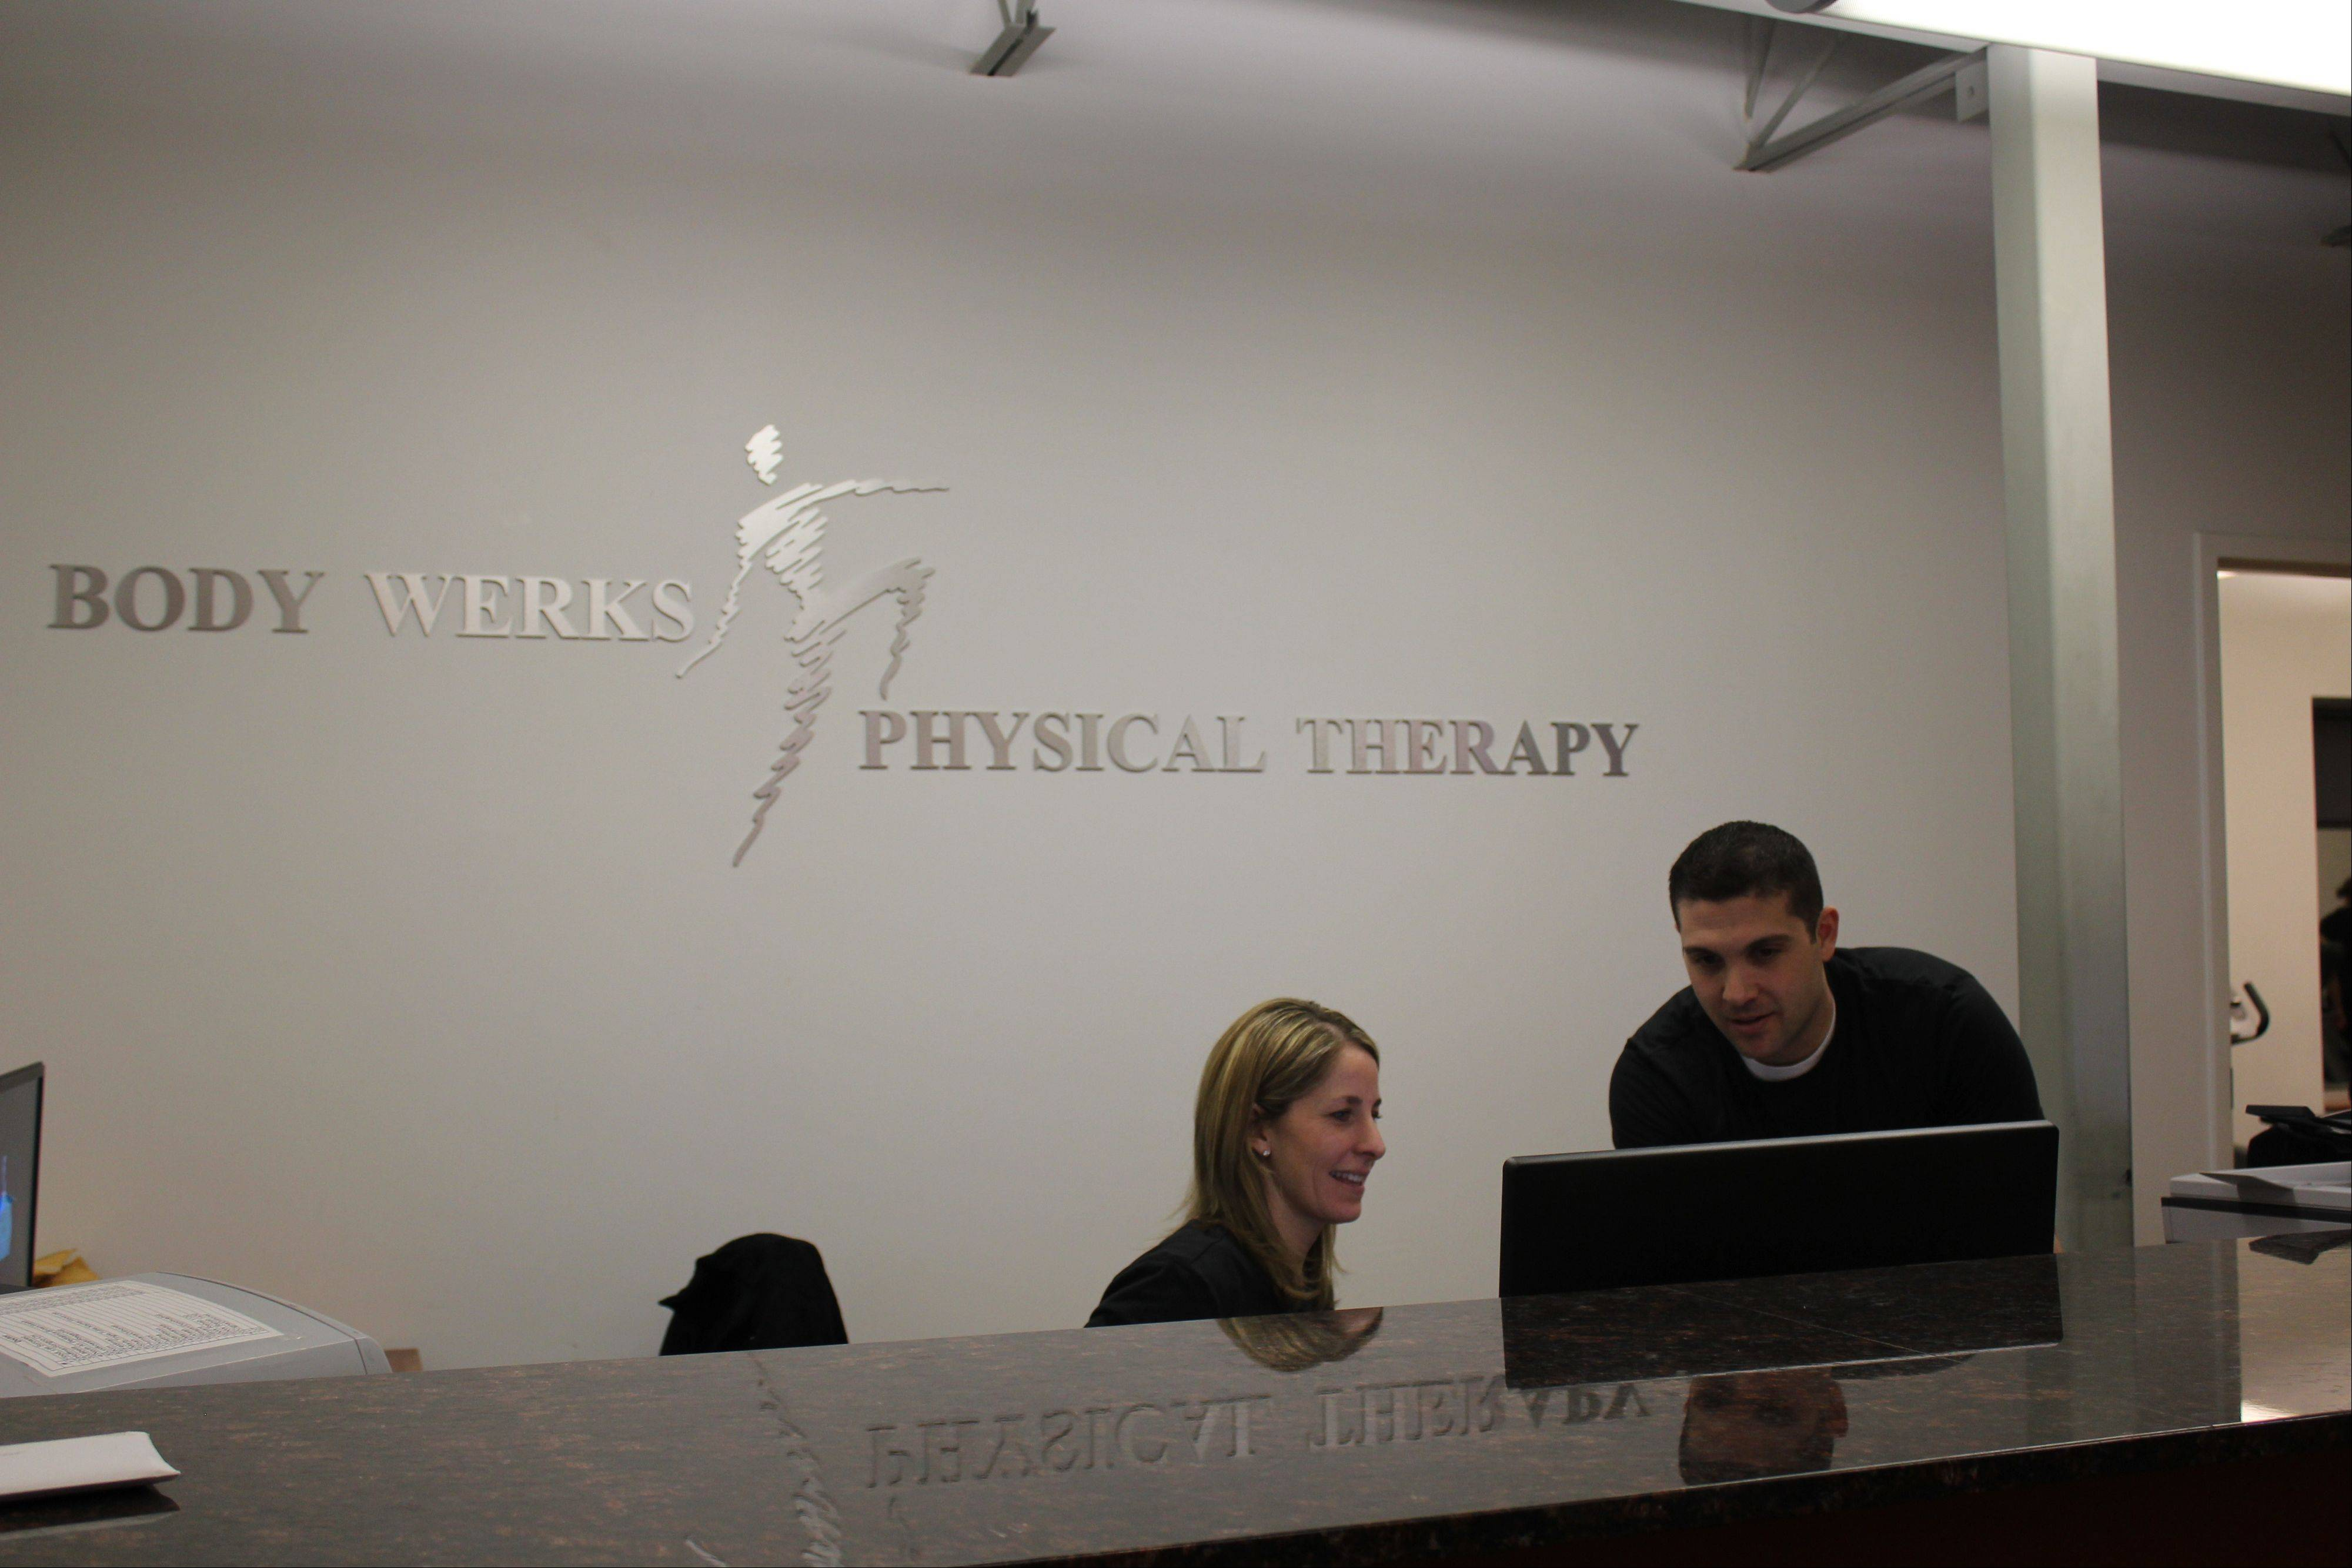 Husband and wife team, Jaime and Marc Ginsberg, operate Body Werks Physical Therapy Ltd. in Arlington Heights.